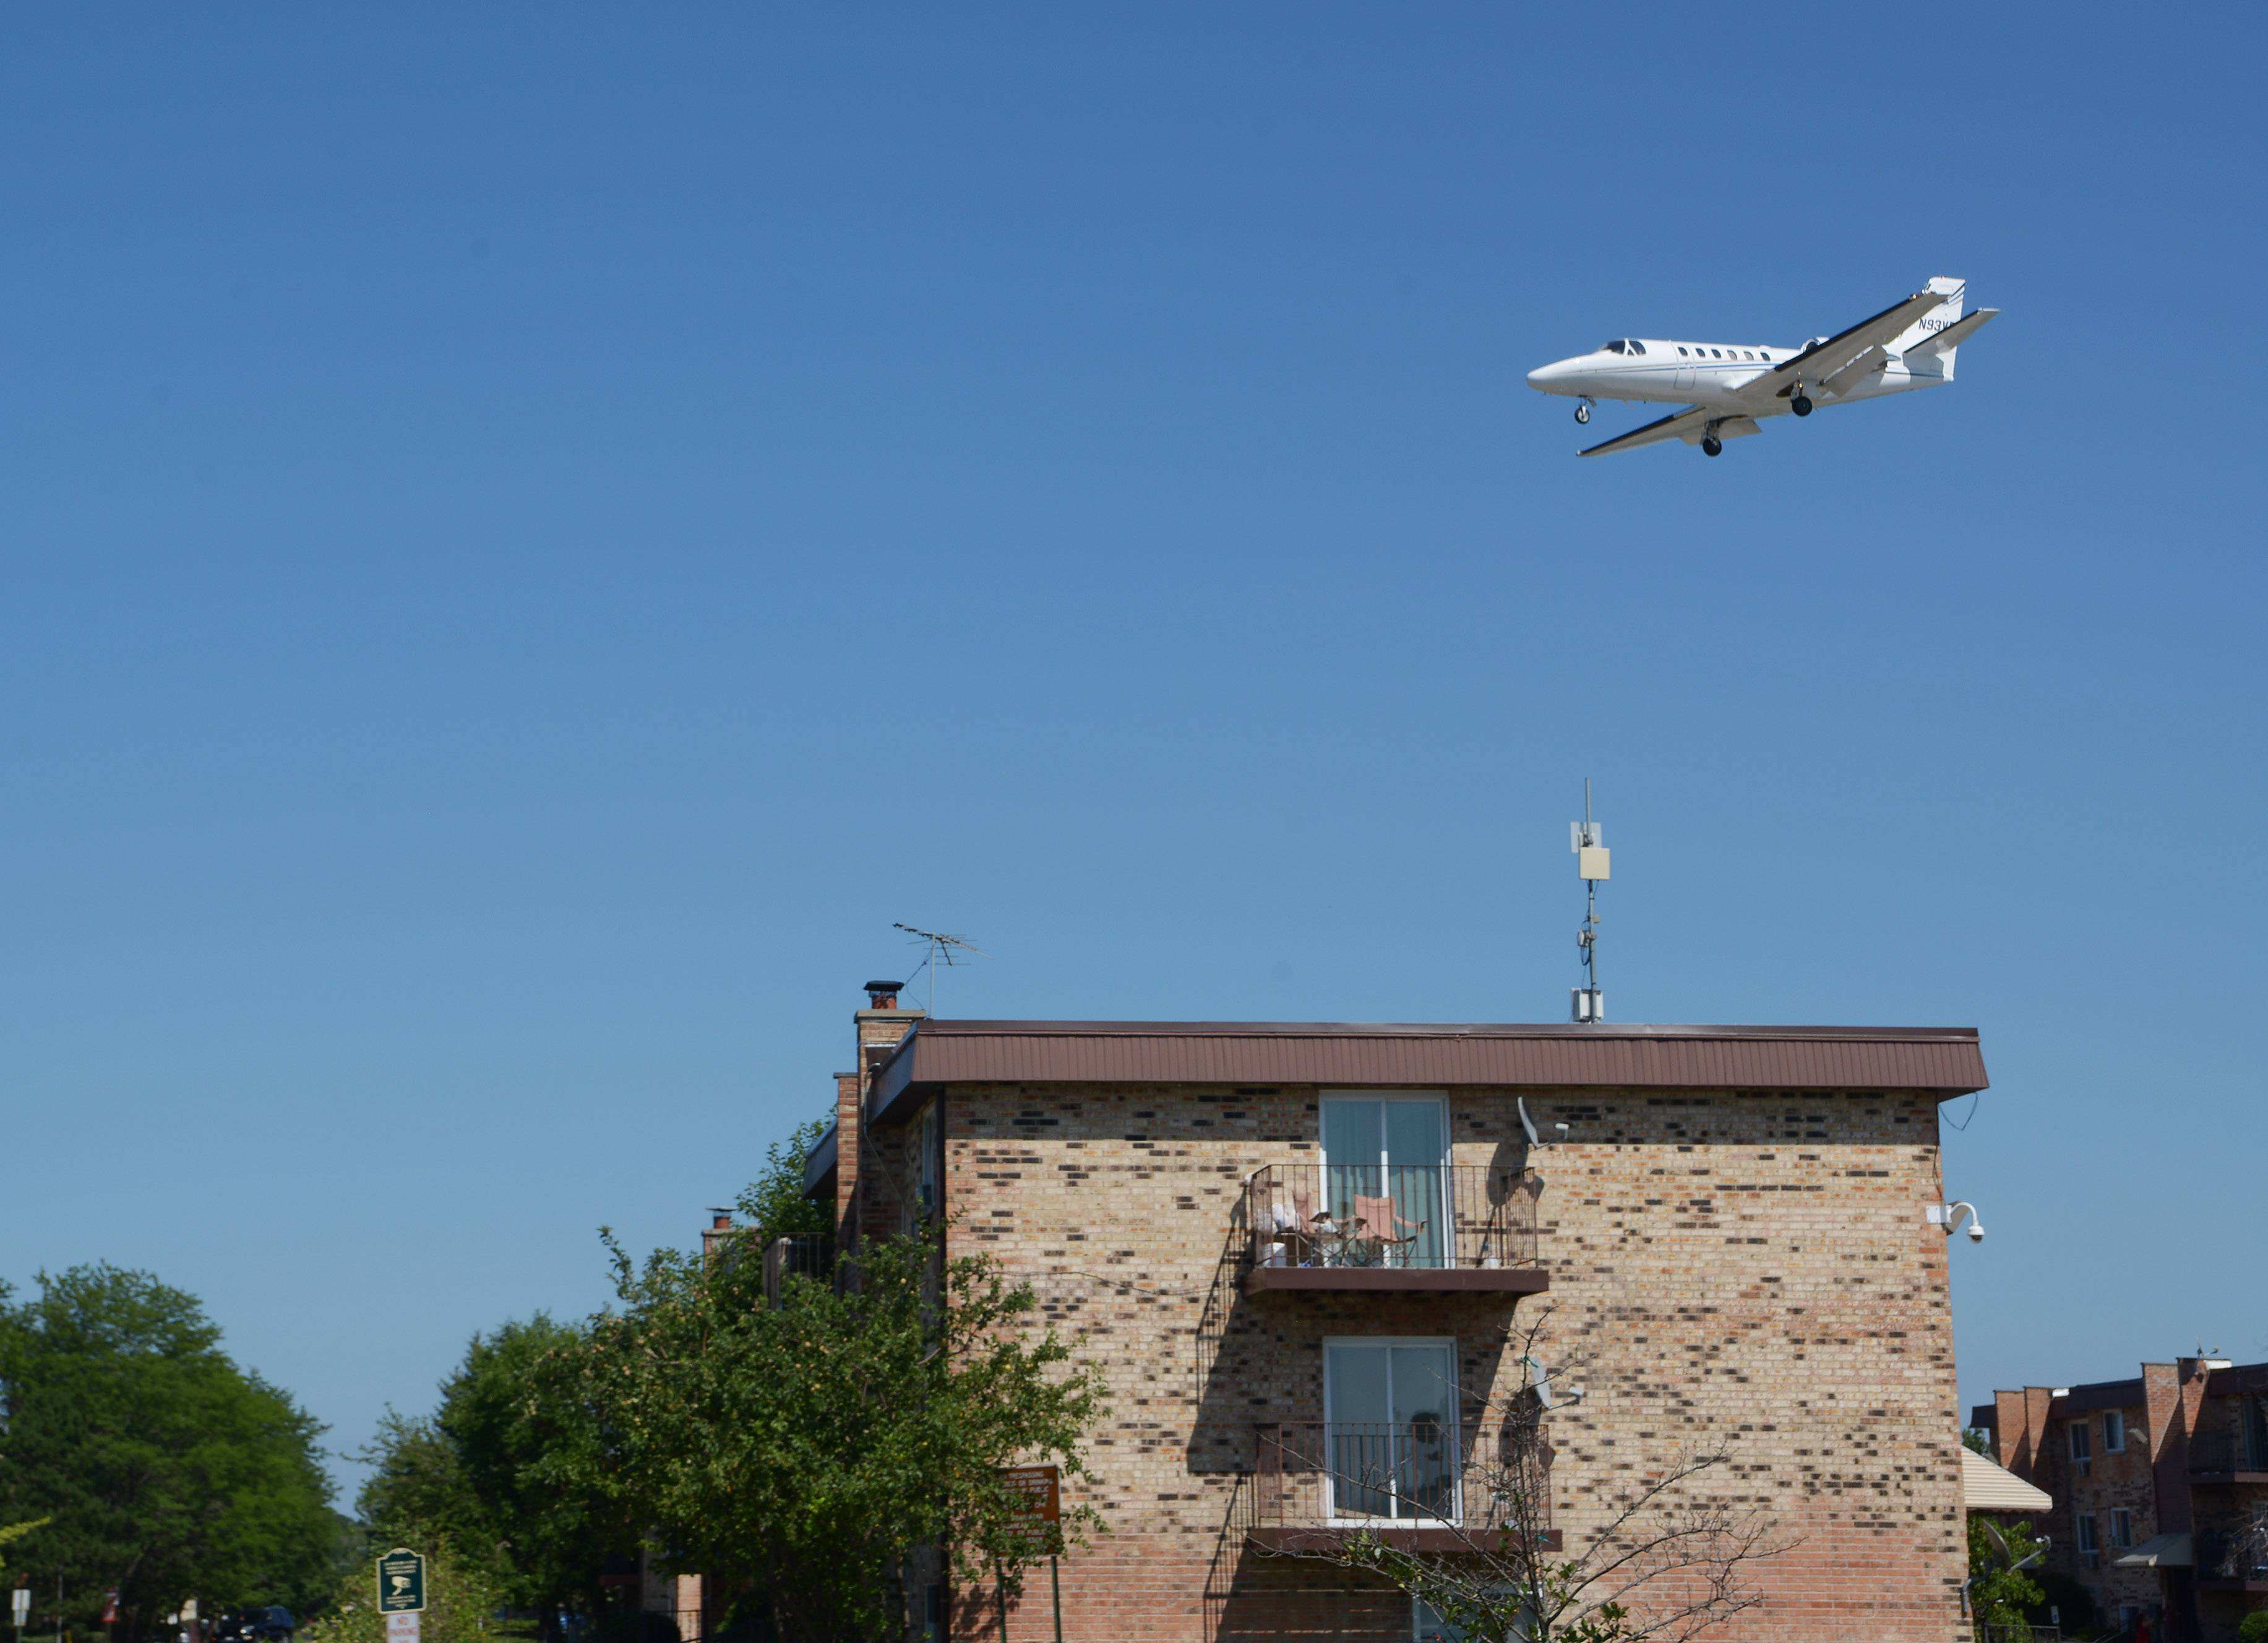 Plan would help soundproof homes around Chicago Executive Airport